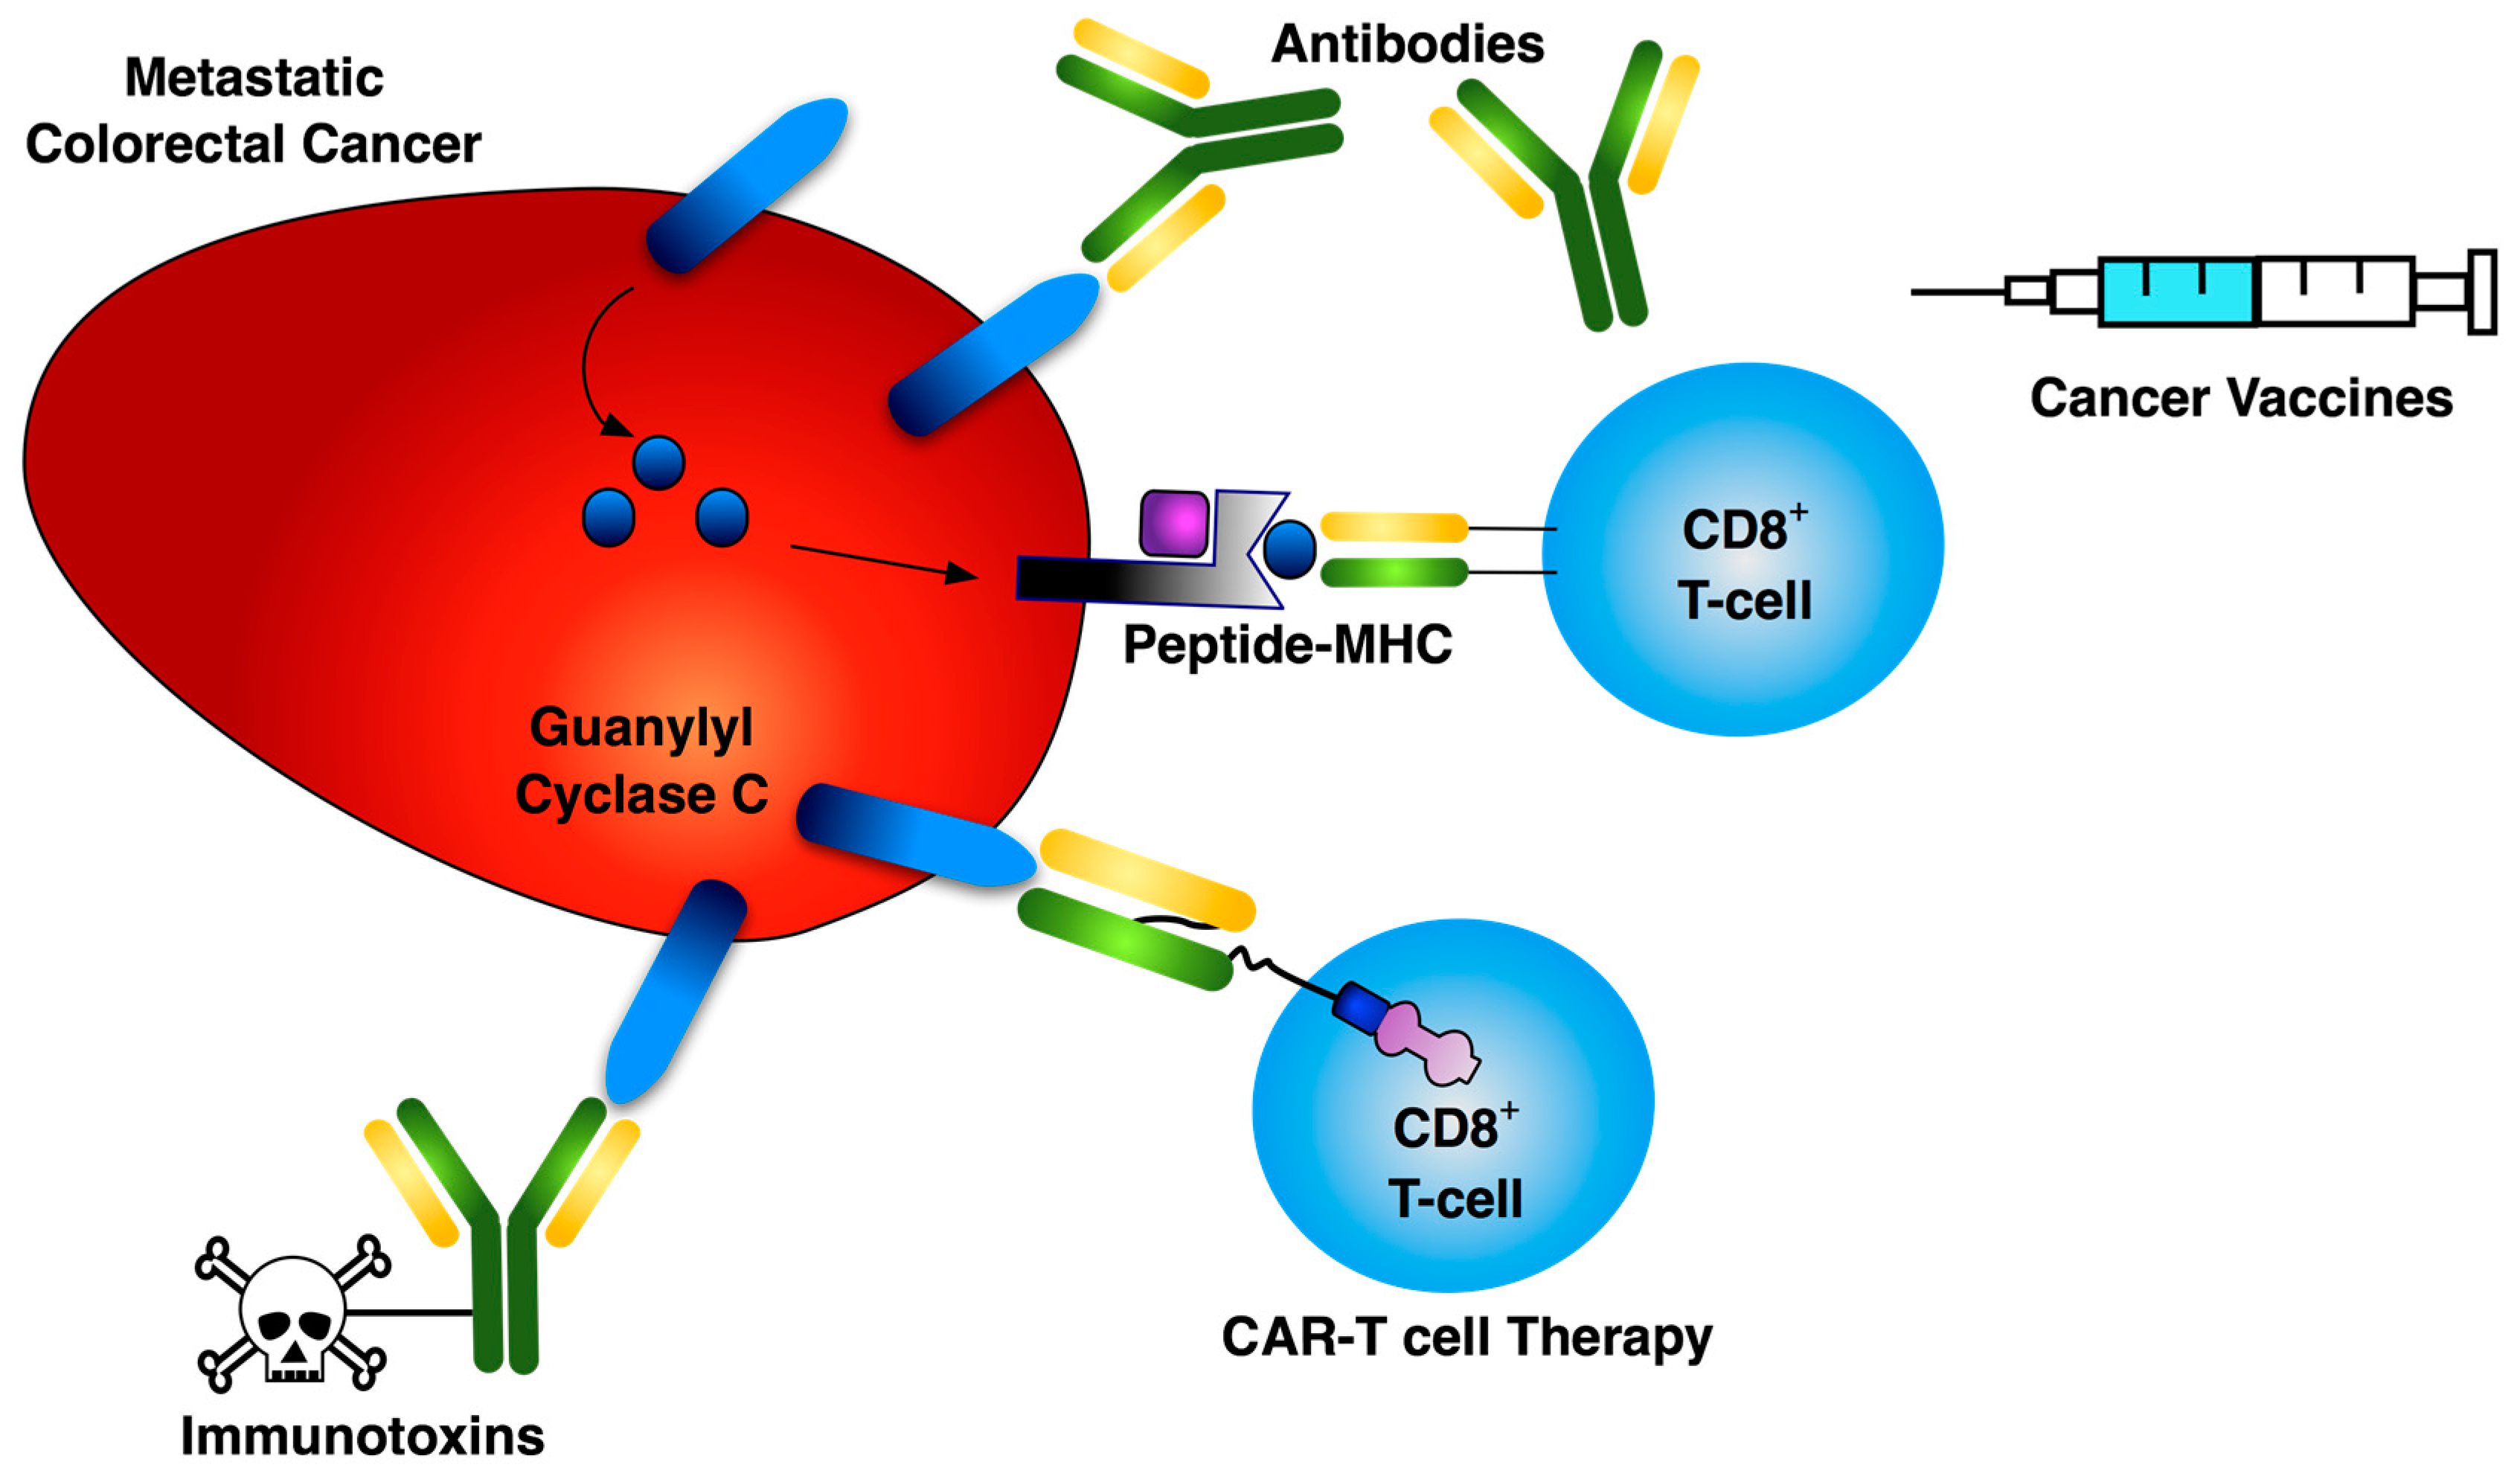 Toxins Free Full Text The Heat Stable Enterotoxin Receptor Guanylyl Cyclase C As A Pharmacological Target In Colorectal Cancer Immunotherapy A Bench To Bedside Current Report Html